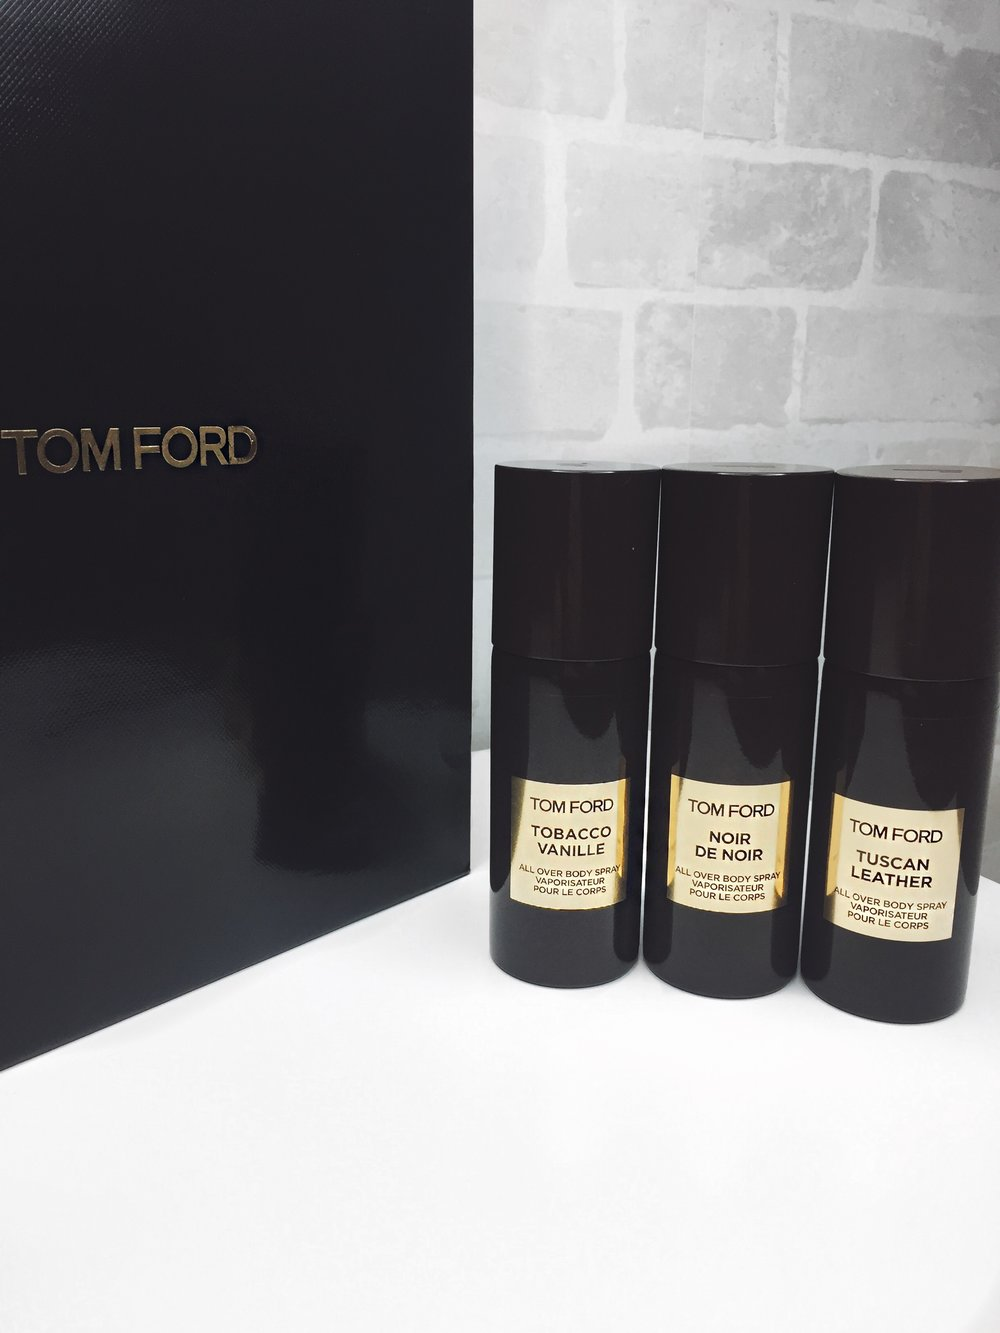 19d53d8d0b414 TOM FORD ALL OVER BODY SPRAYS — Mr Luke Christian